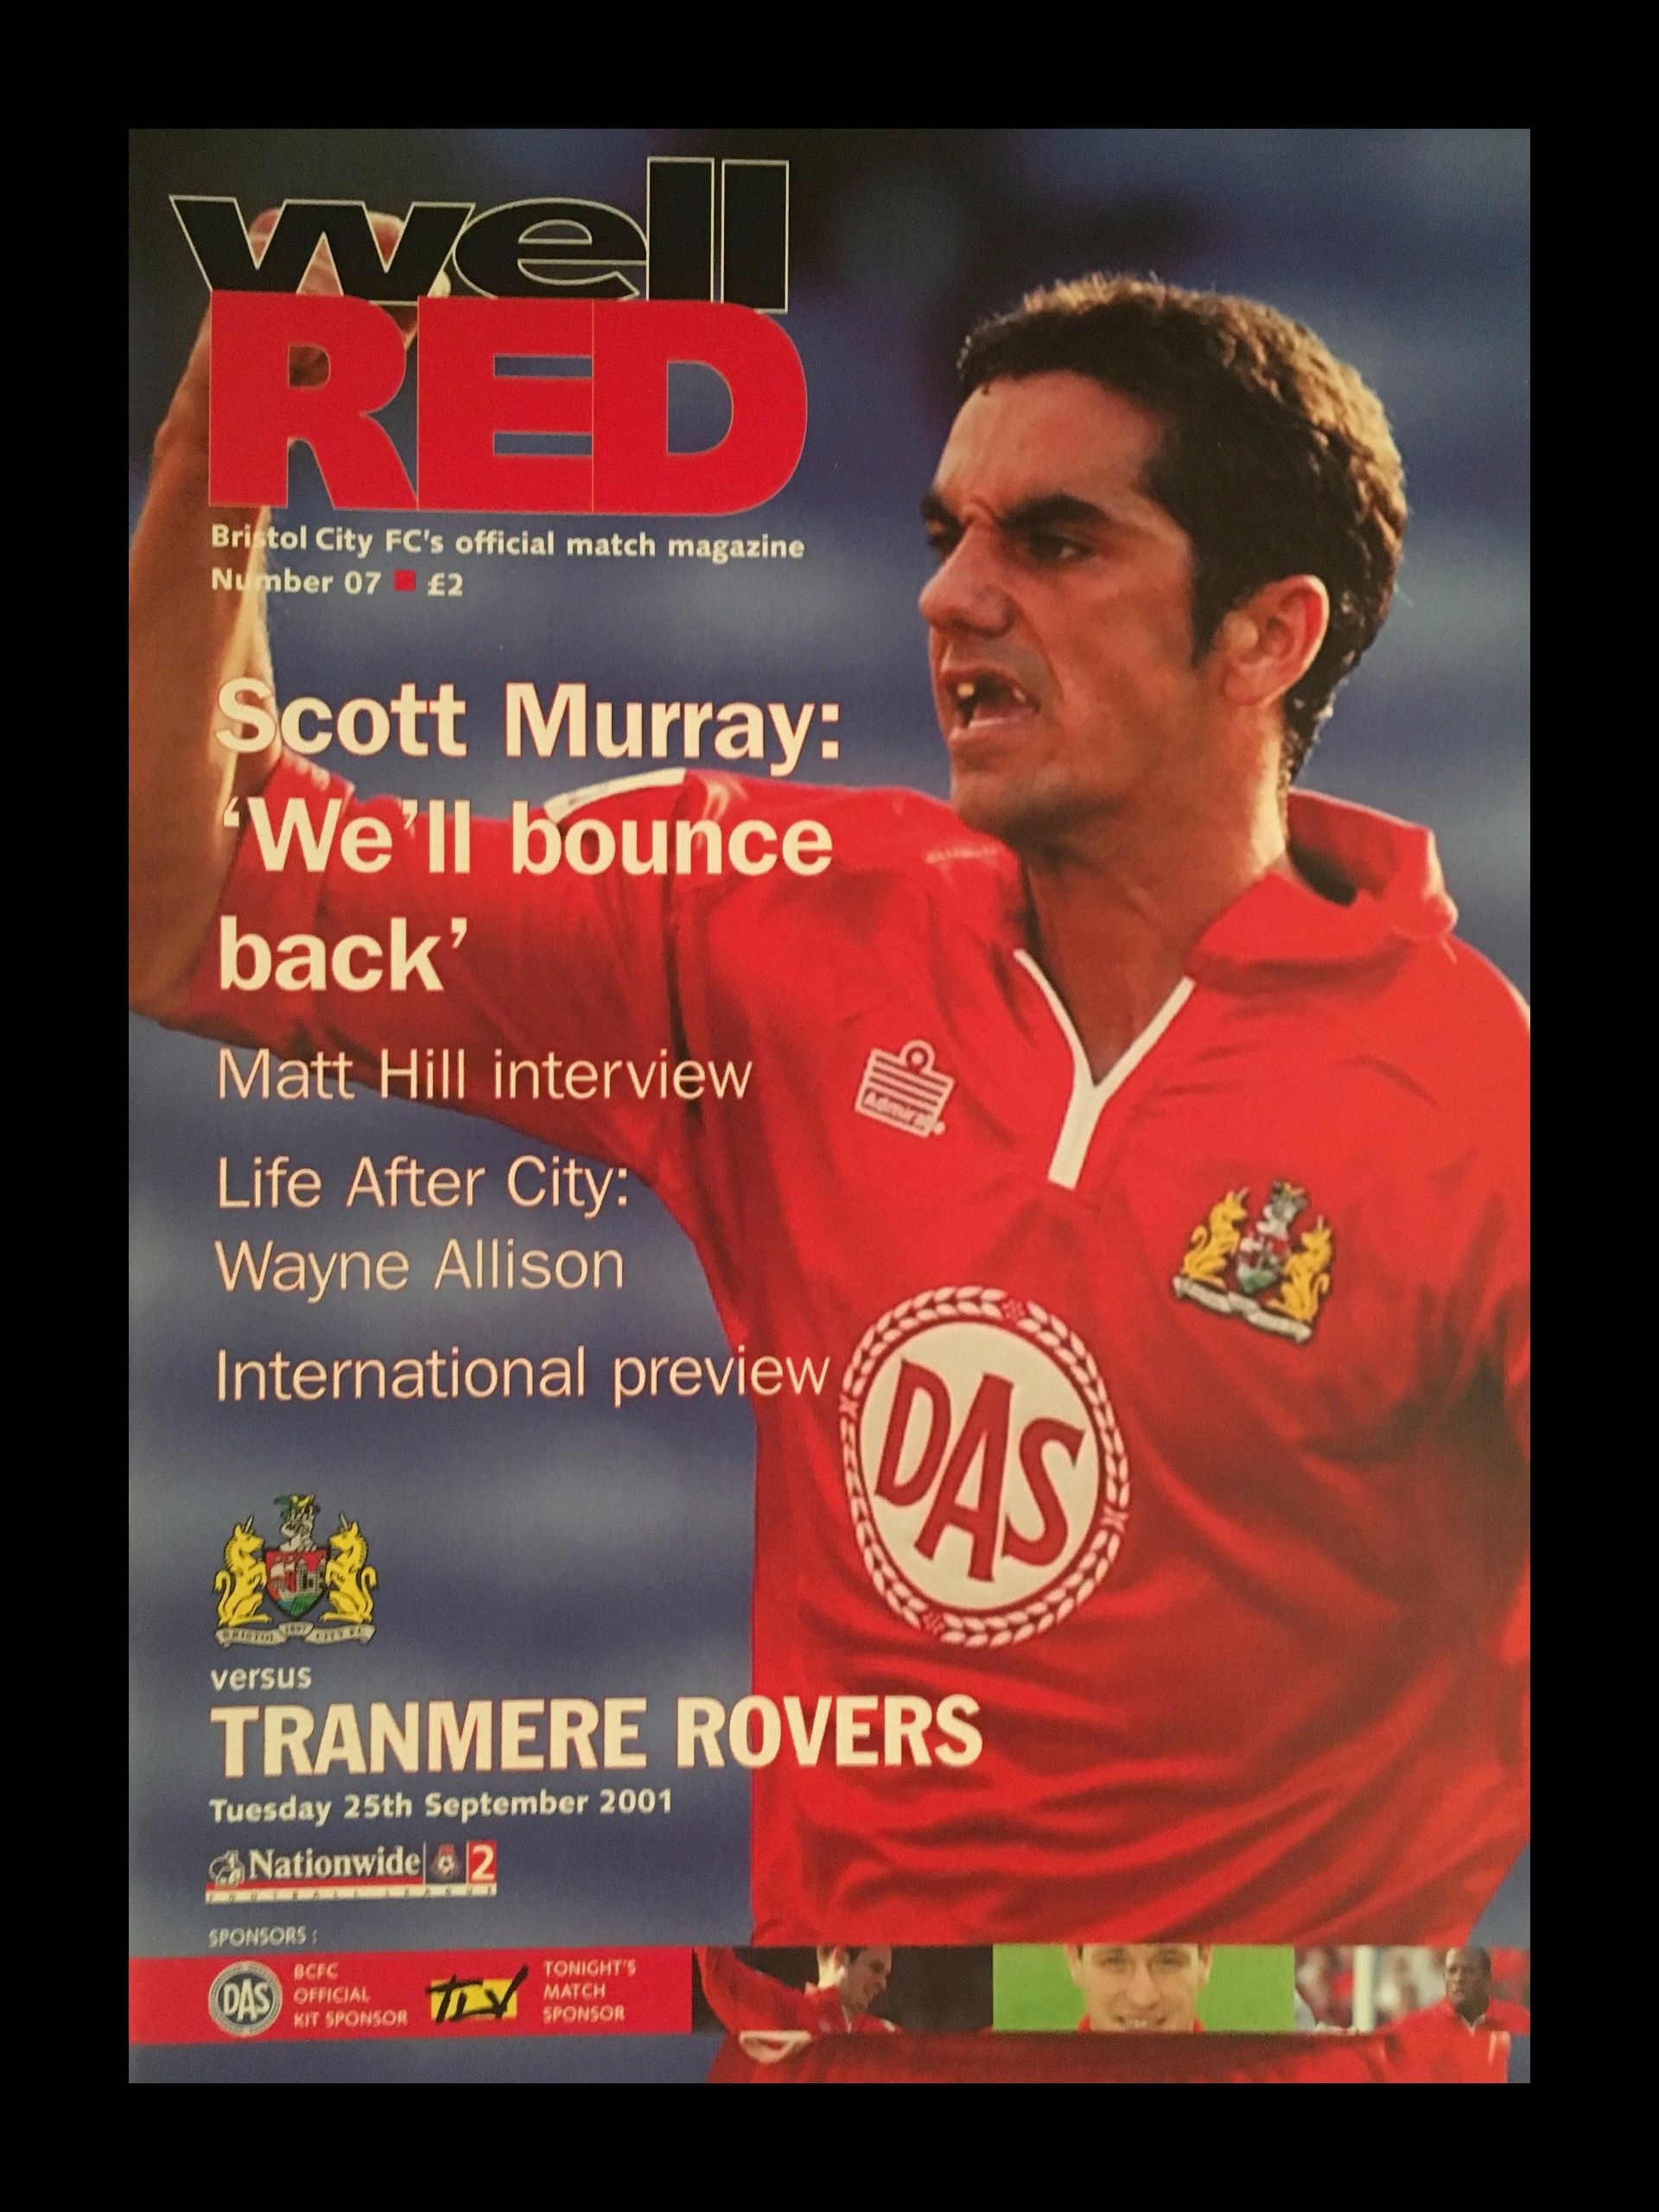 Bristol City v Tranmere Rovers 25-09-2001 Programme